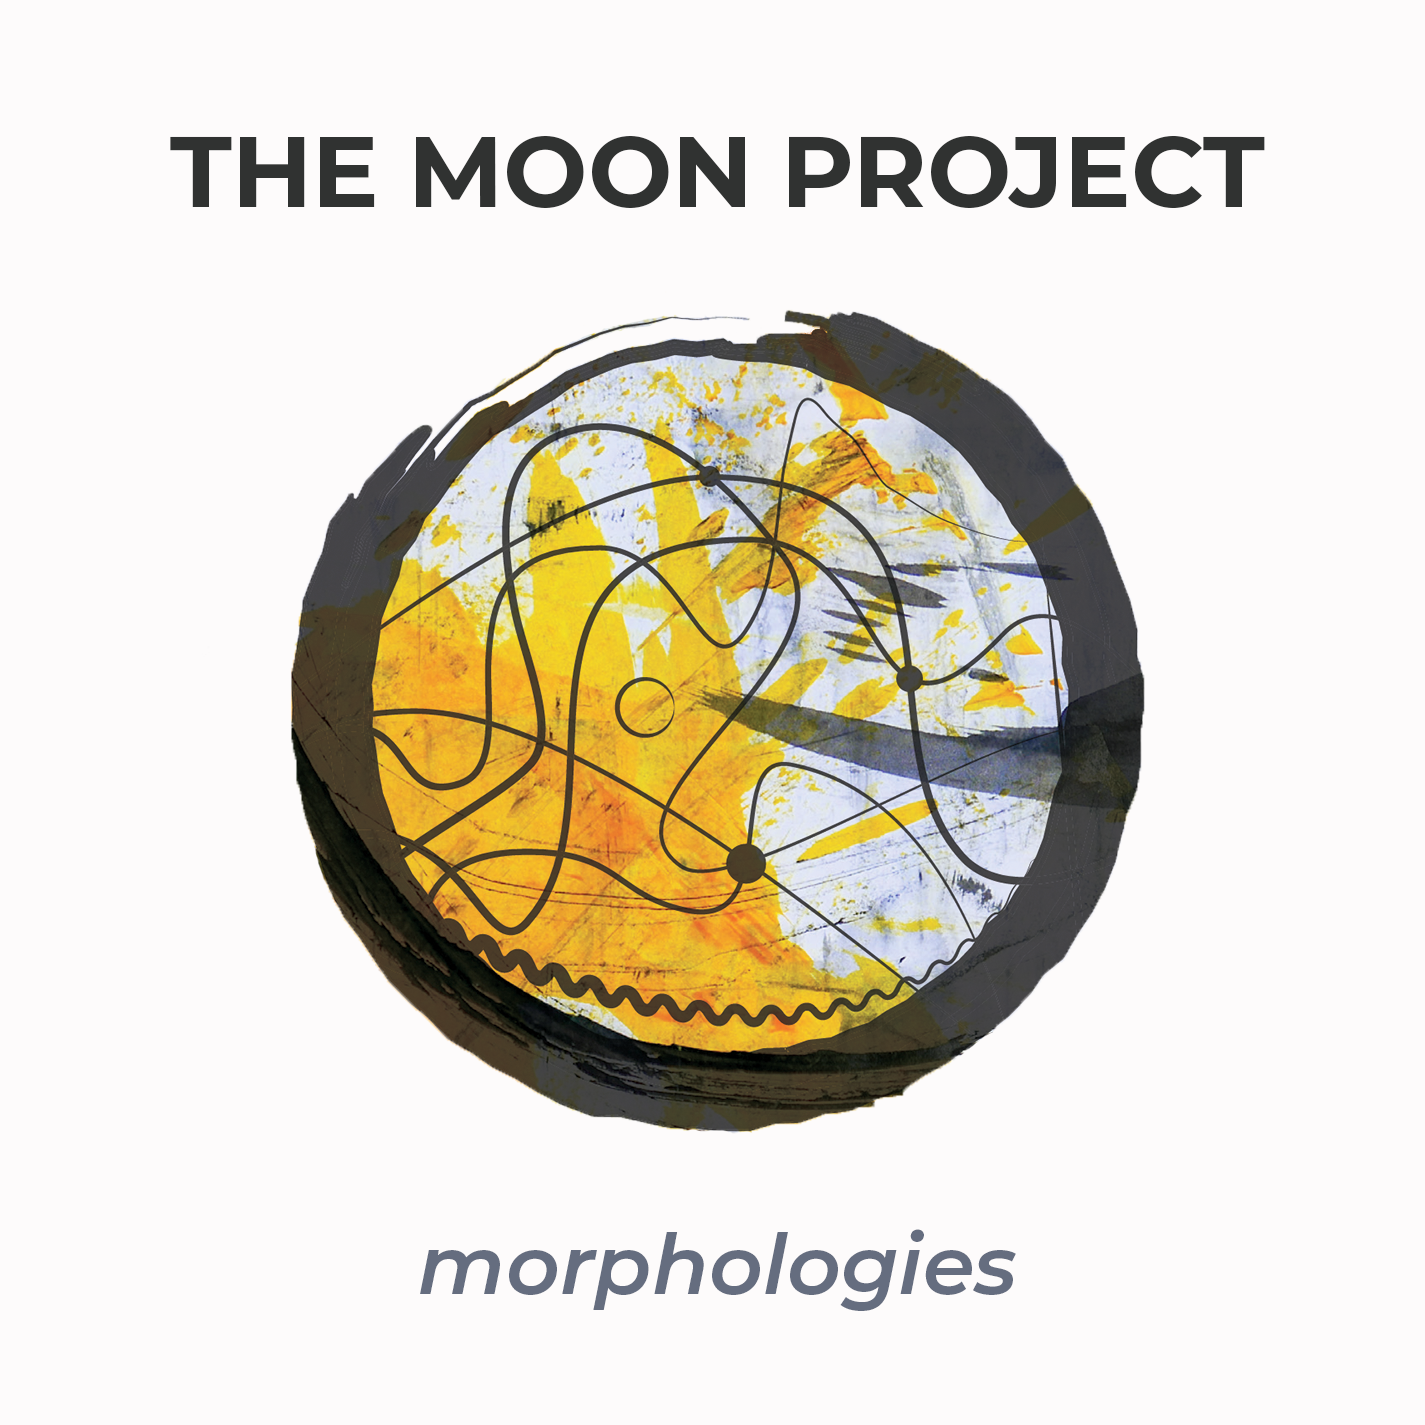 morphologies   The Moon Project